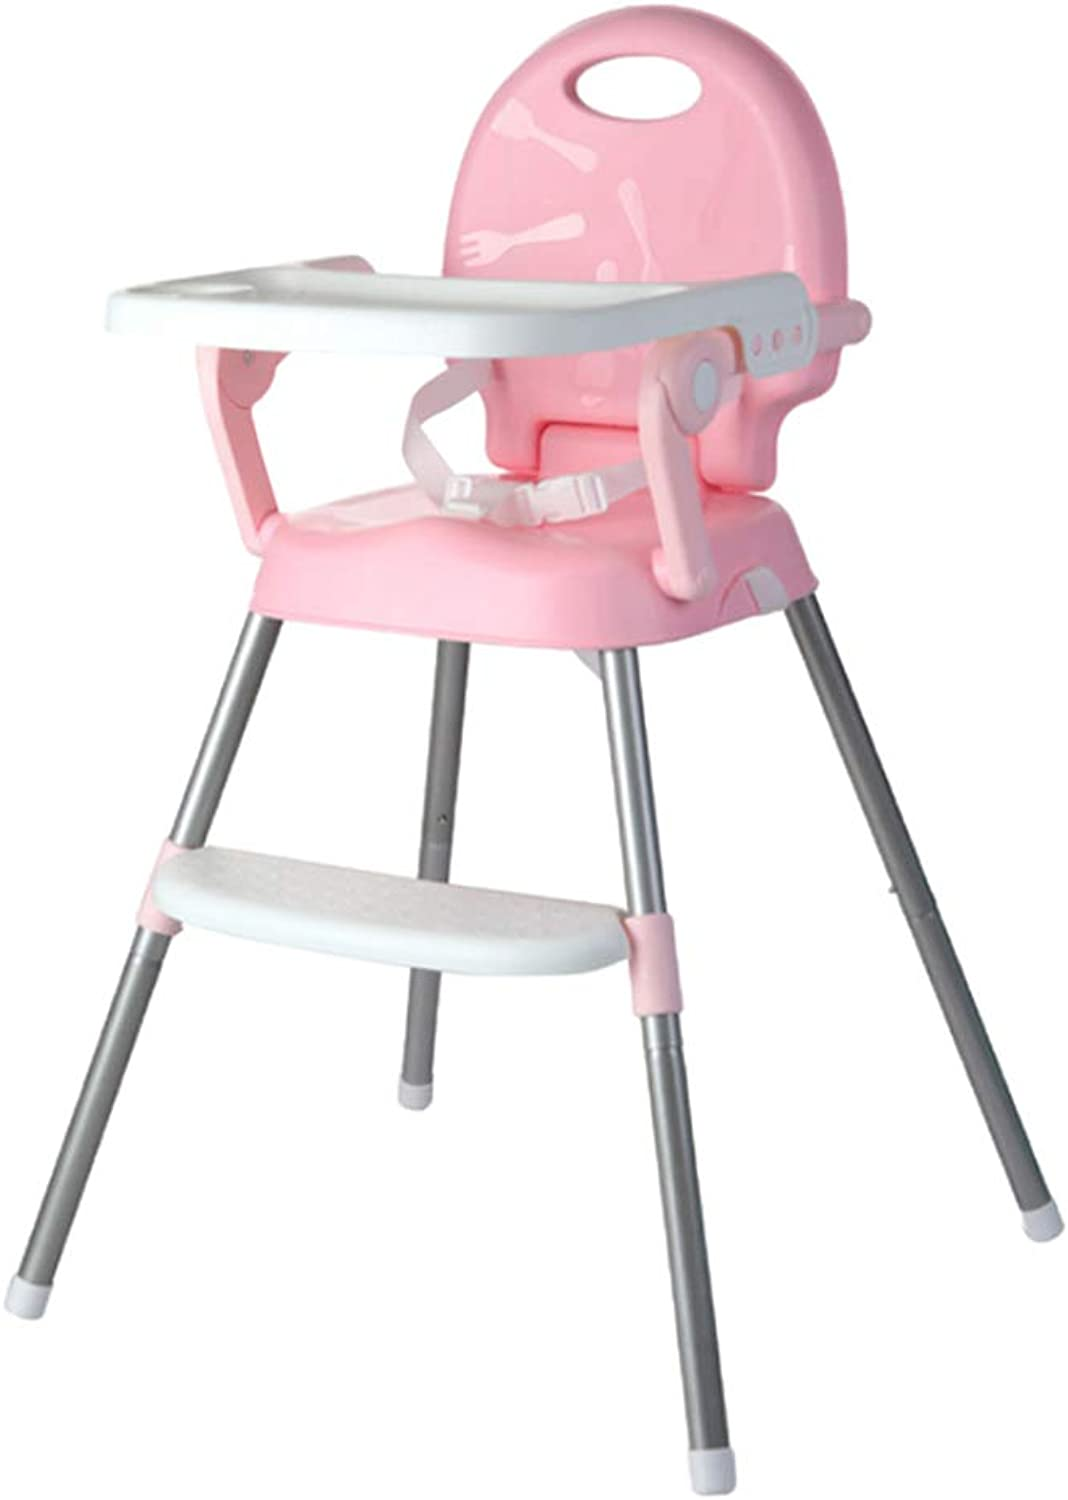 SM SunniMix Foldable 3 in 1 Baby Toddler Infant Congreenible Highchair Feeding Seat Chair - Pink, as described